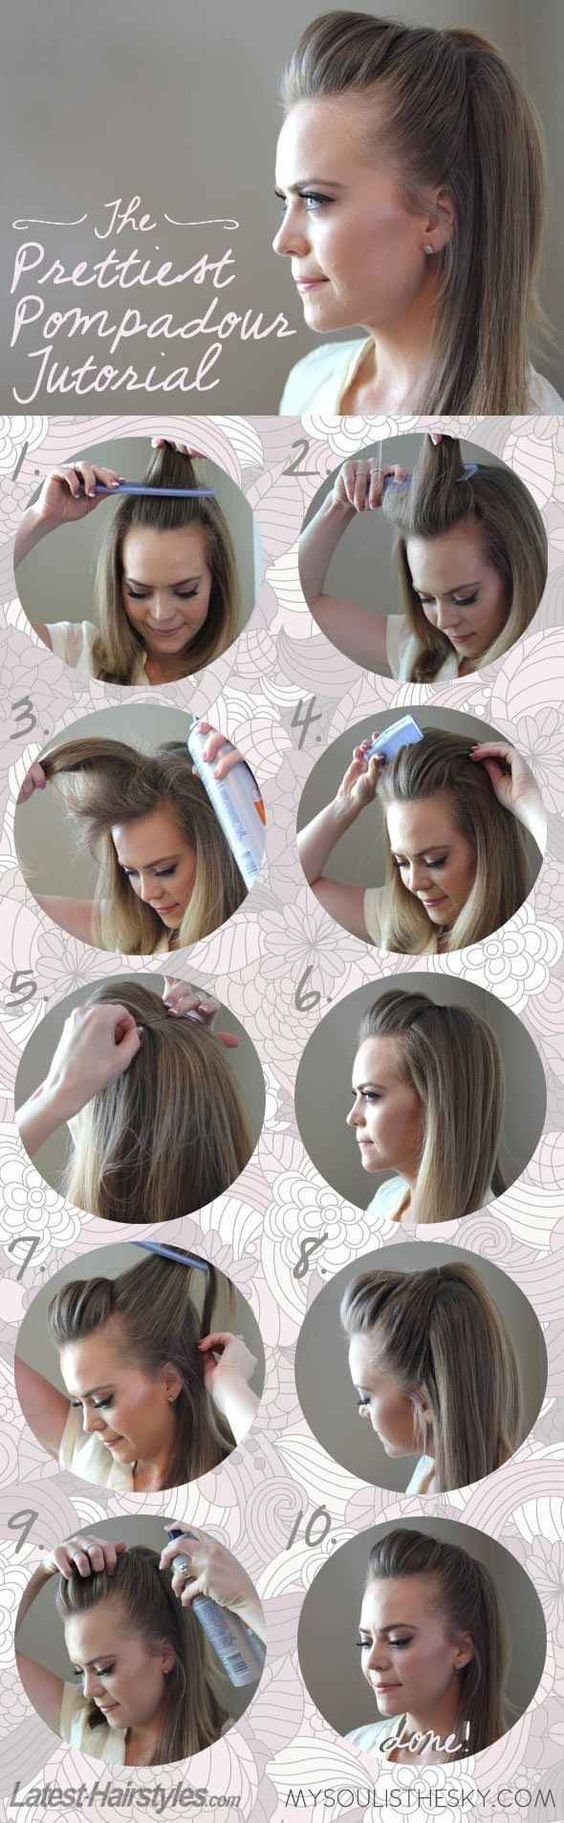 best images about hair styles on pinterest hairstyle for long